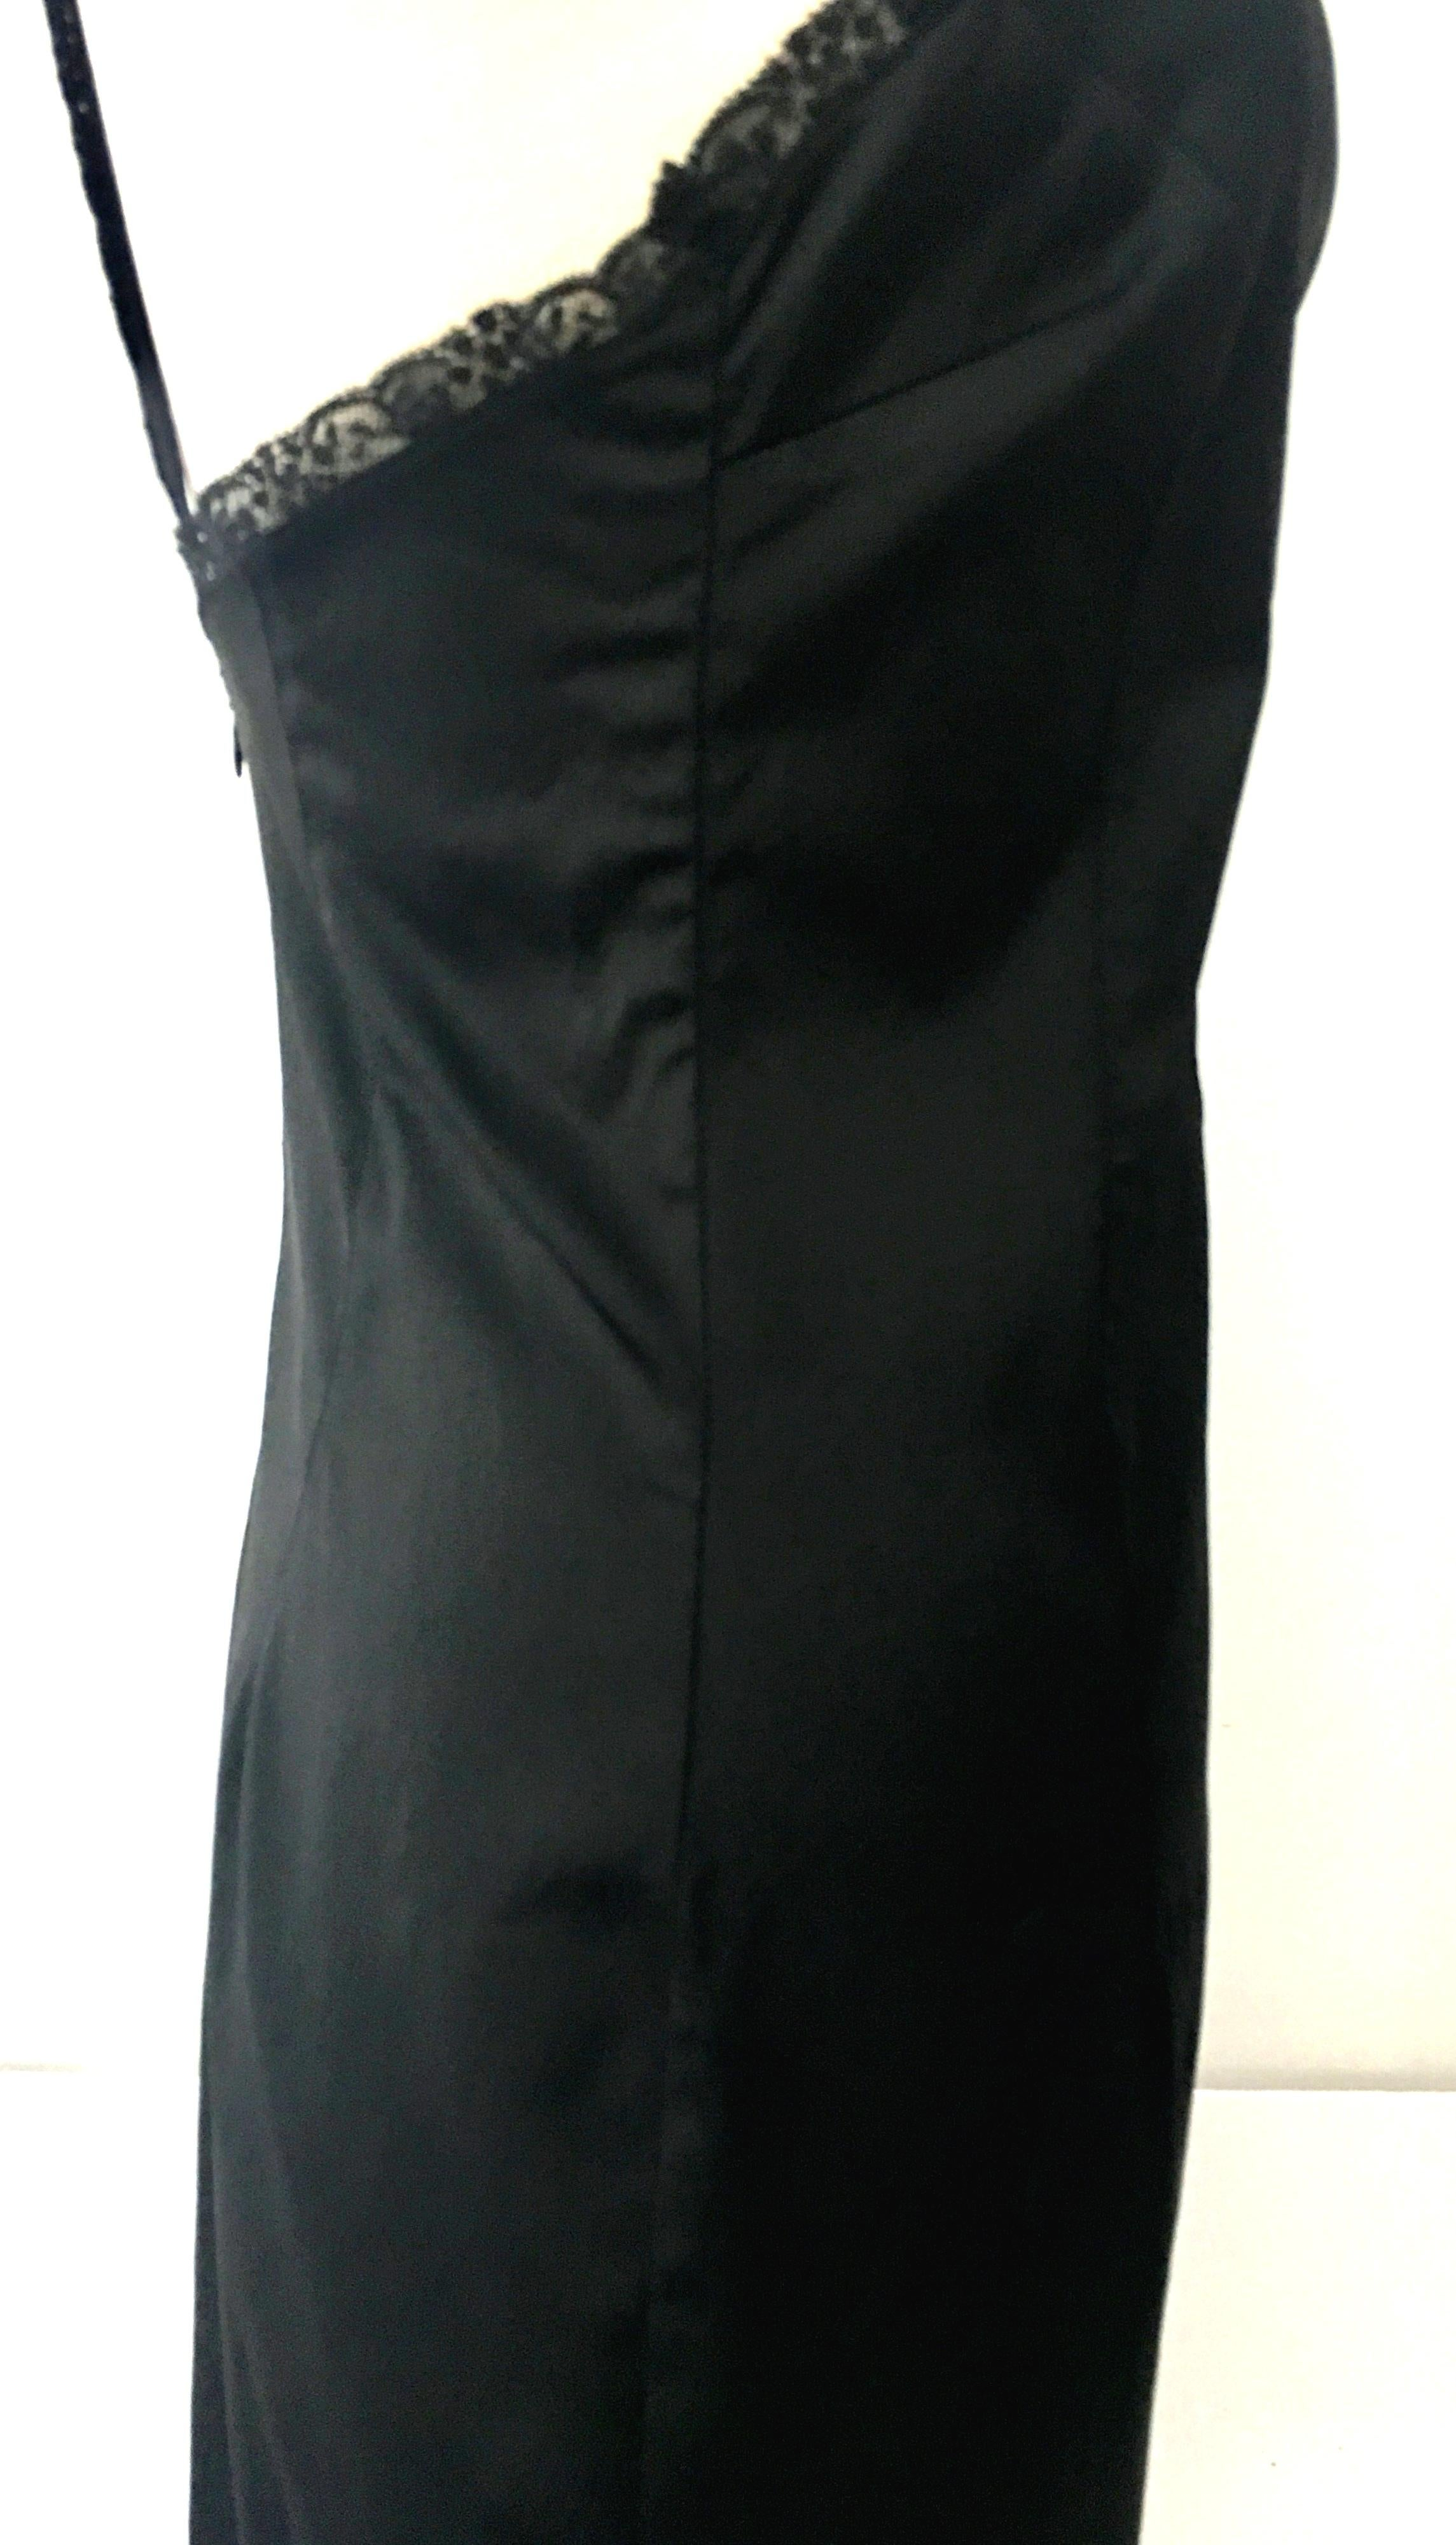 92e7509f 90'S Classic Dolce and Gabbana Black Fitted Slip Dress Sz-40 For Sale at  1stdibs